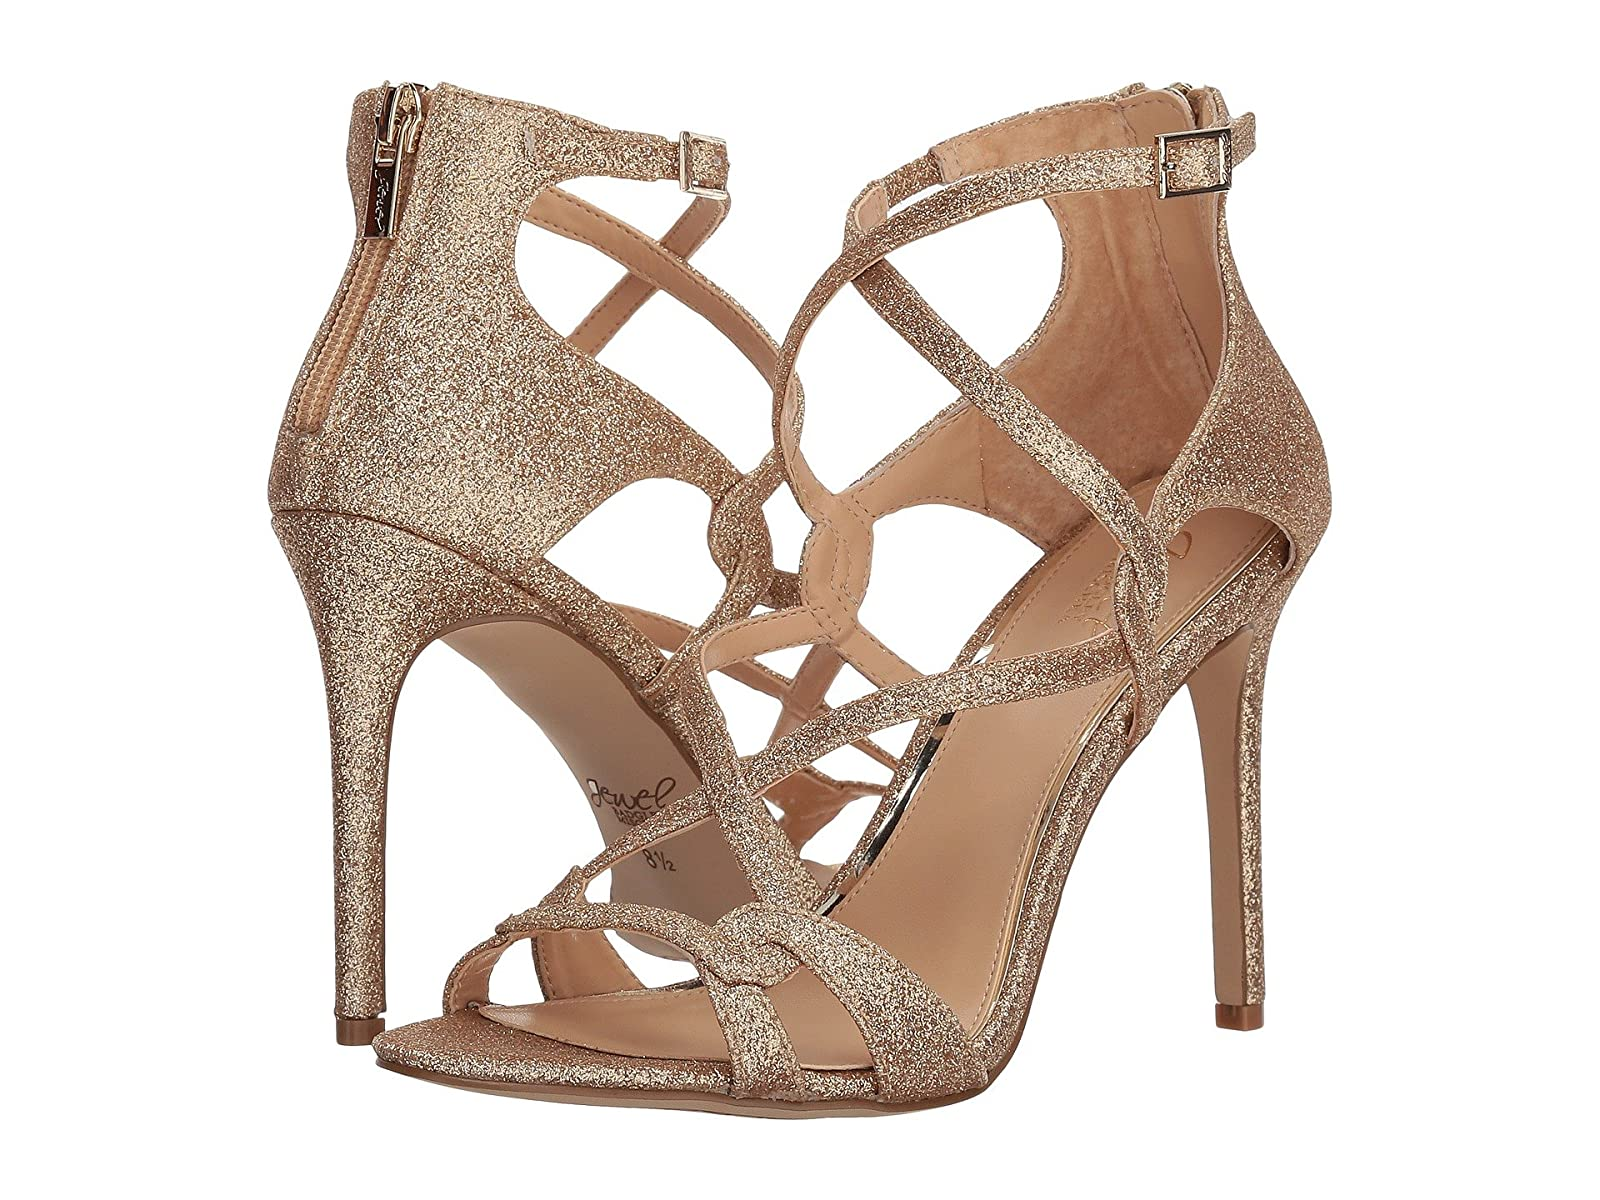 Jewel Badgley Mischka AlizaCheap and distinctive eye-catching shoes